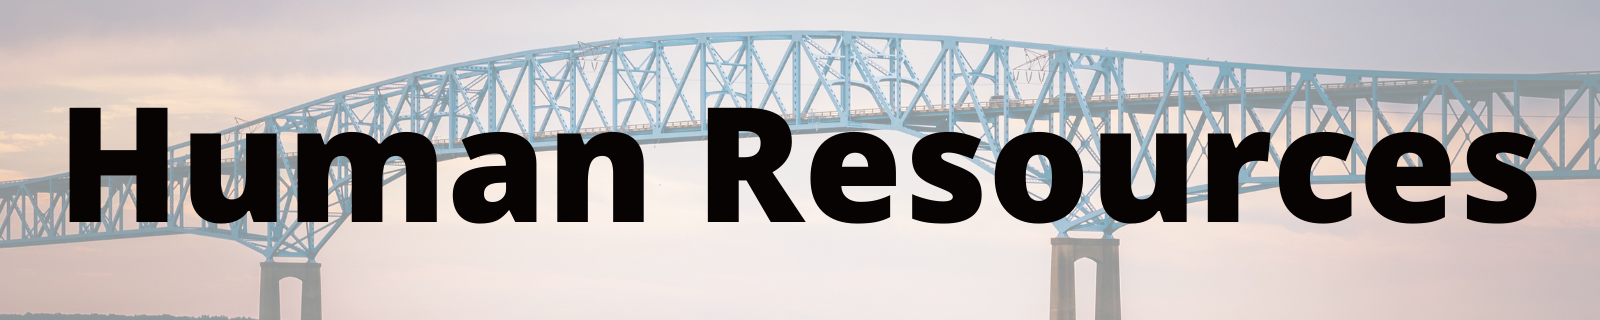 "header that reads ""human resources"""